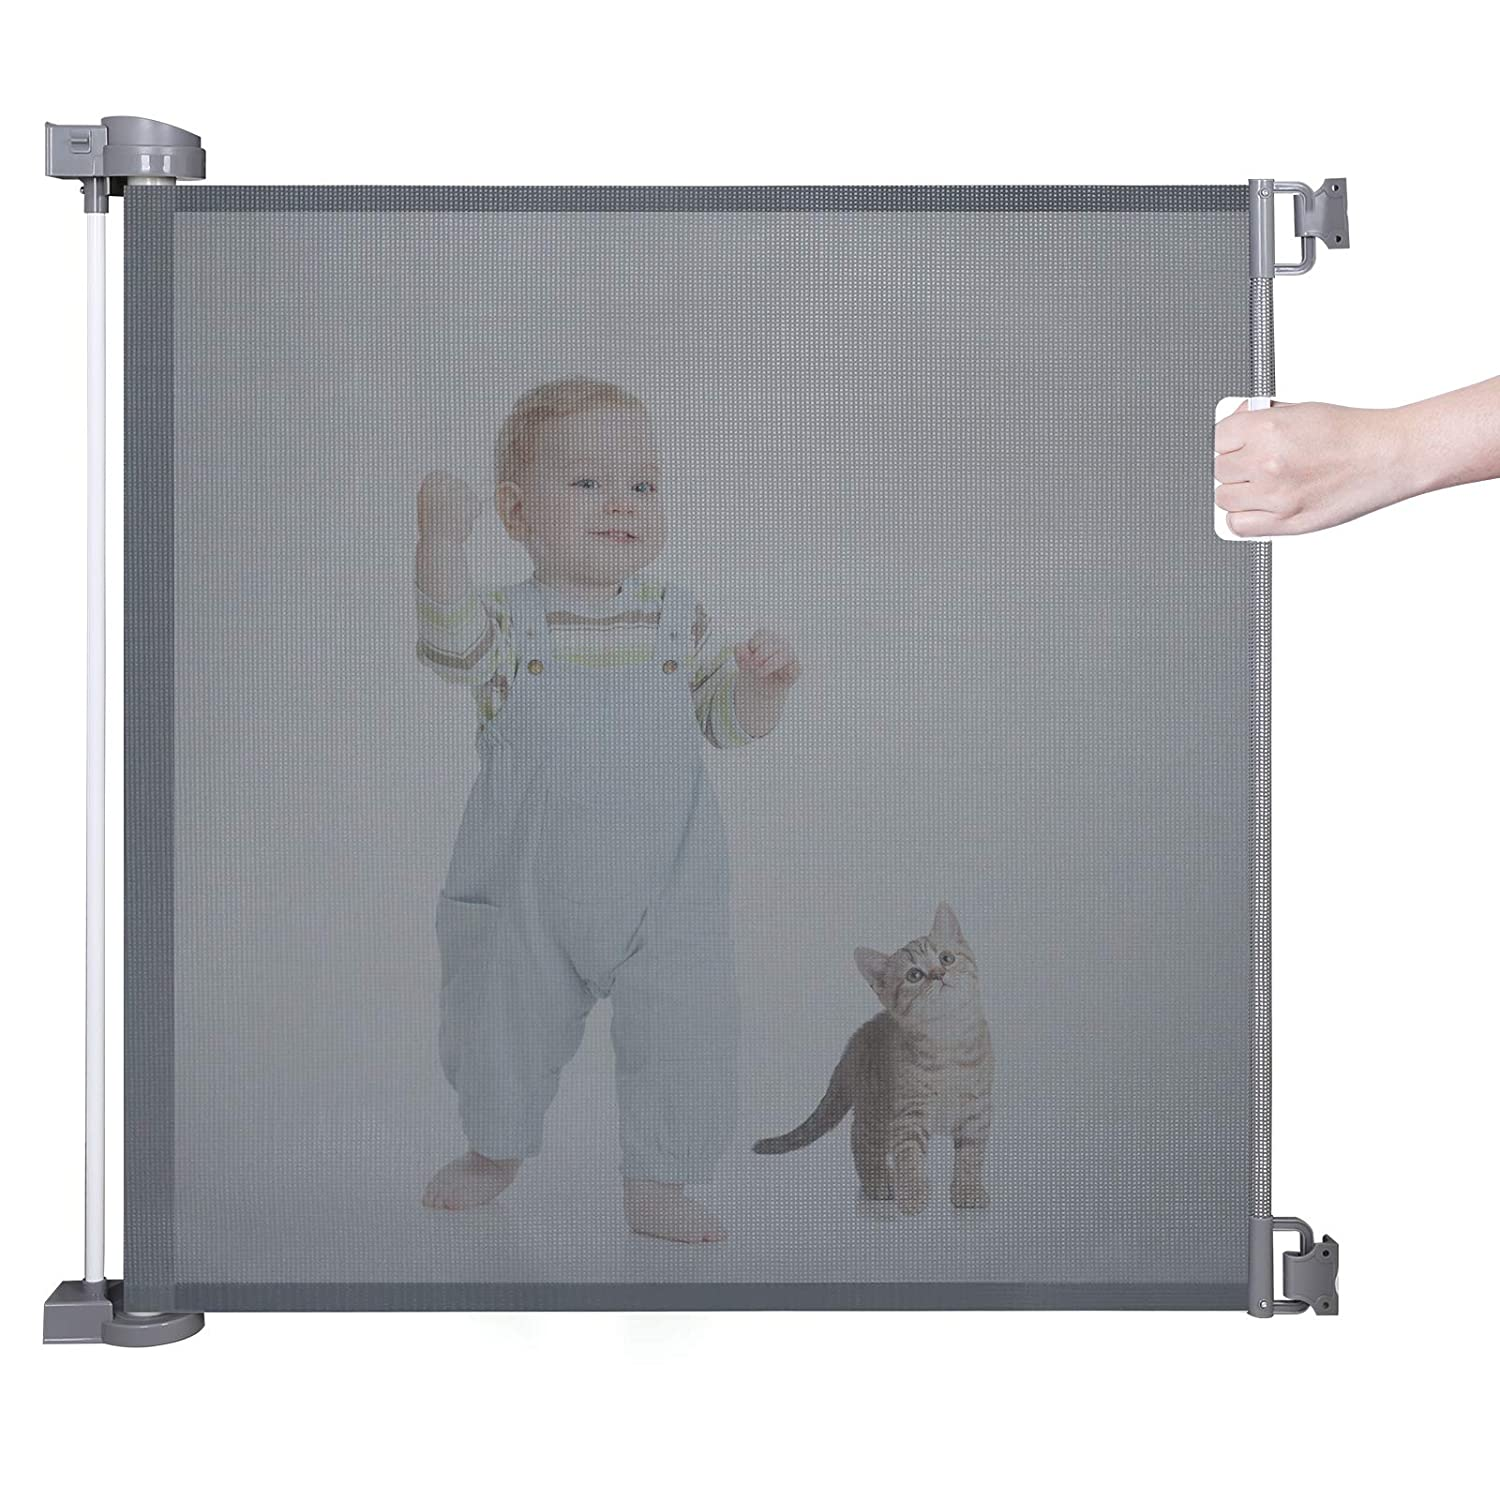 Retractable Baby Gate for Kids or Pets, Abaook Mesh Baby Safety Gate for Doorways Stairs Hallways Patios Indoor Outdoor, Child Gate Extra Wide 34